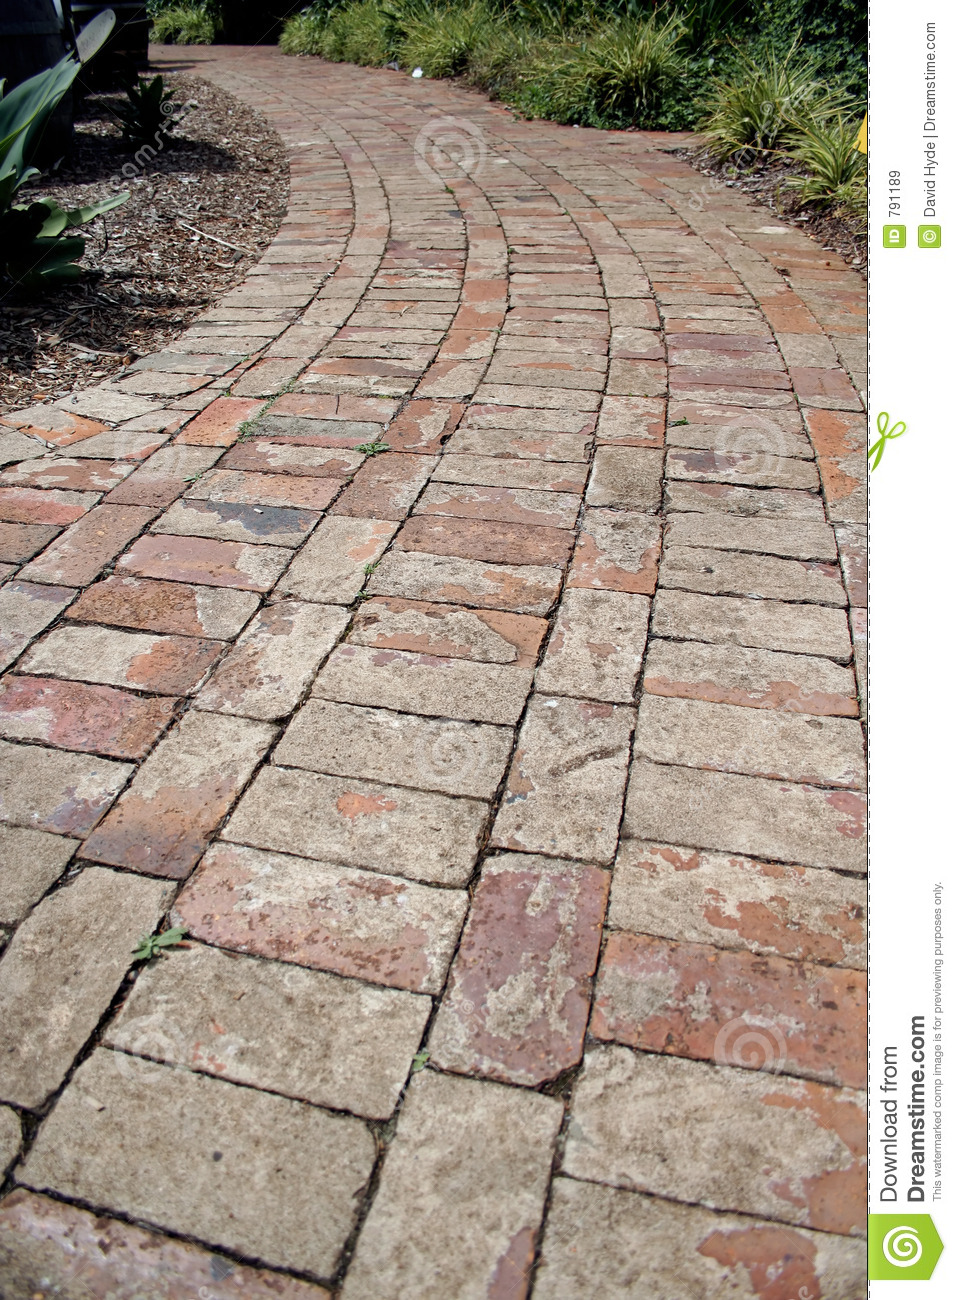 Brick Path Stock Image Image Of Stroll Step Walk Lane